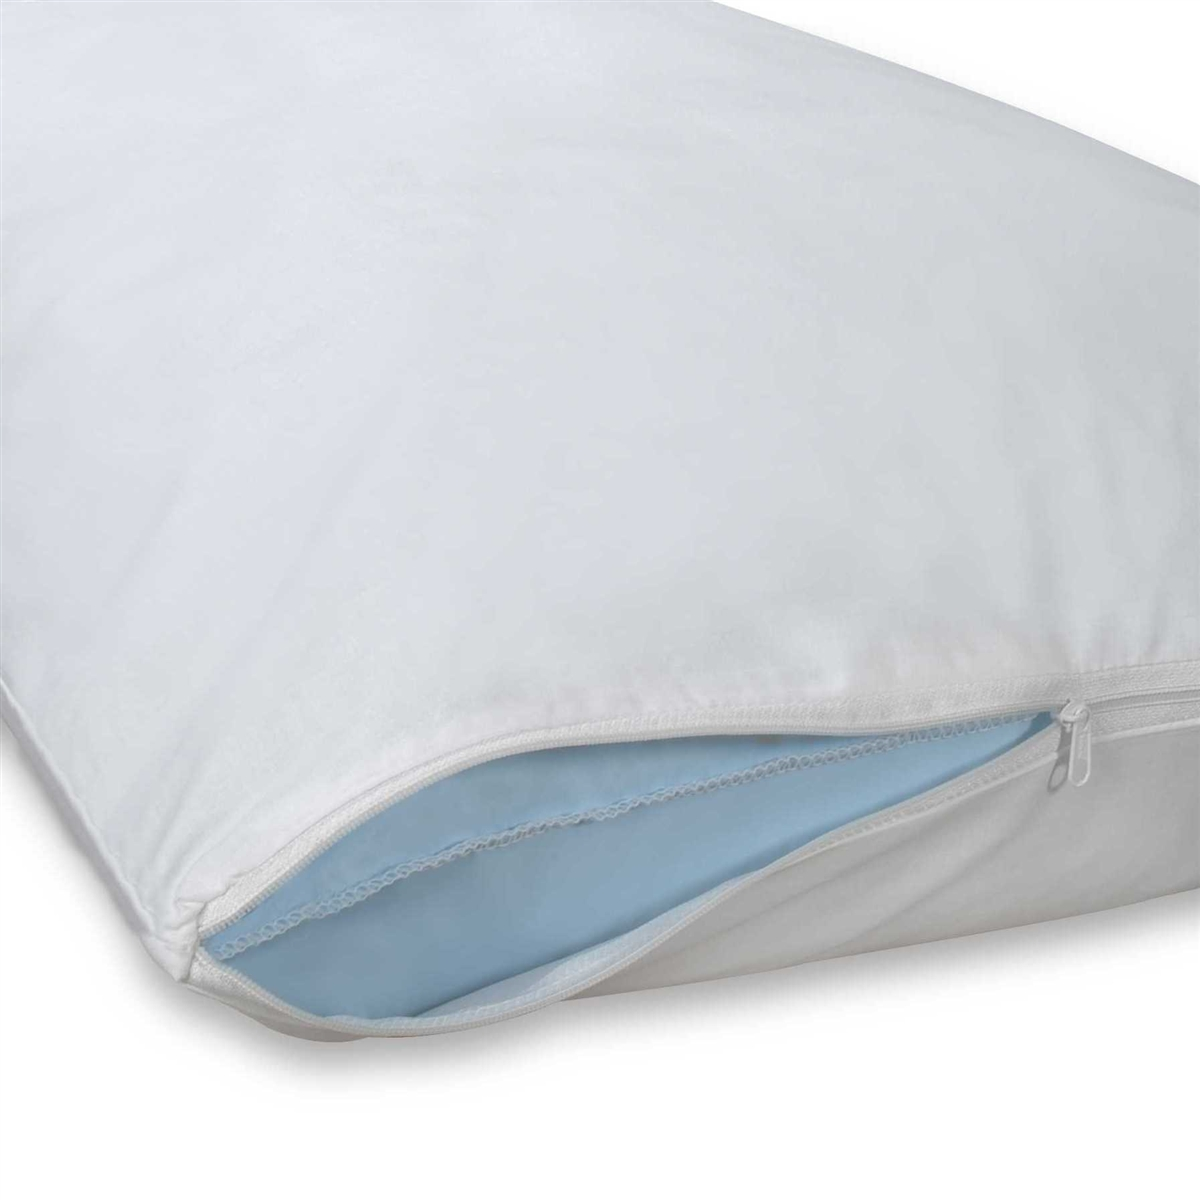 Pillow Protector King 20x36 Exquisite Hotel Supply